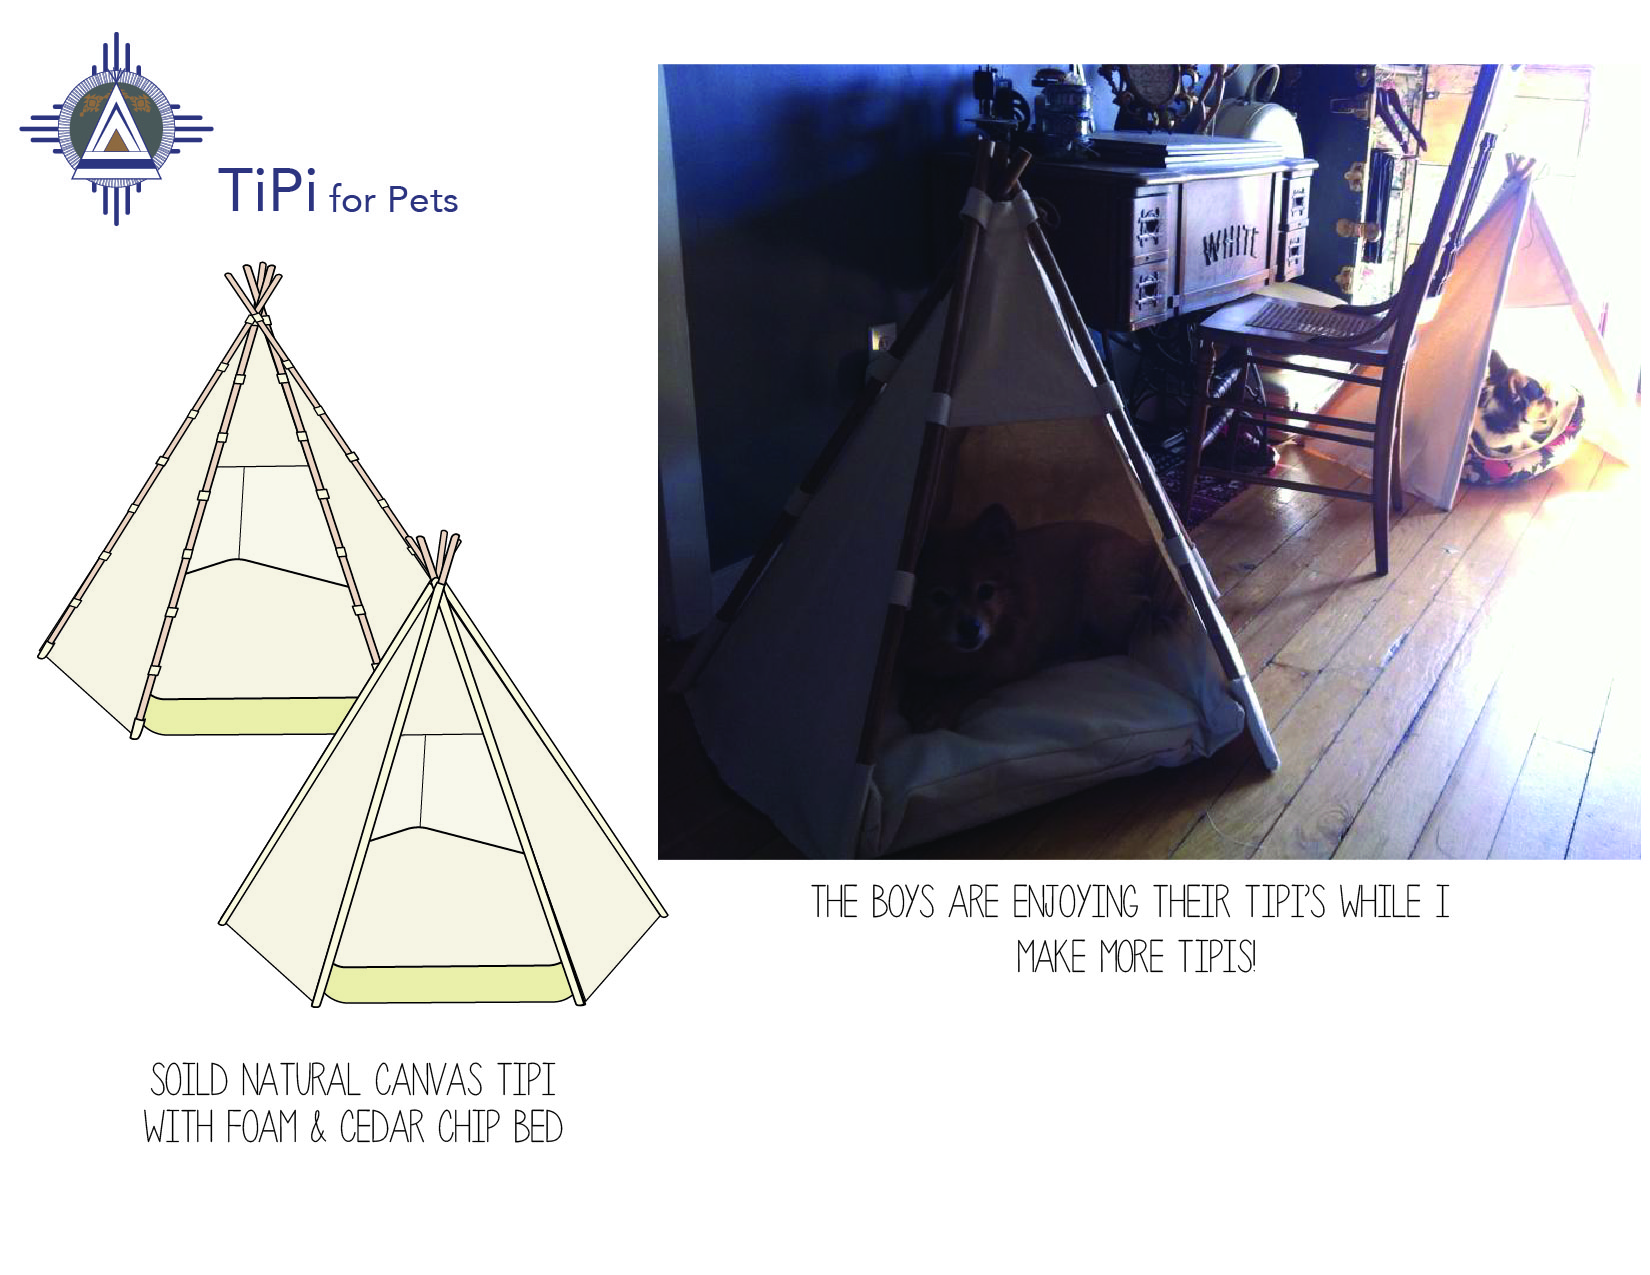 3_Tipi Look Book_Artboard.jpg